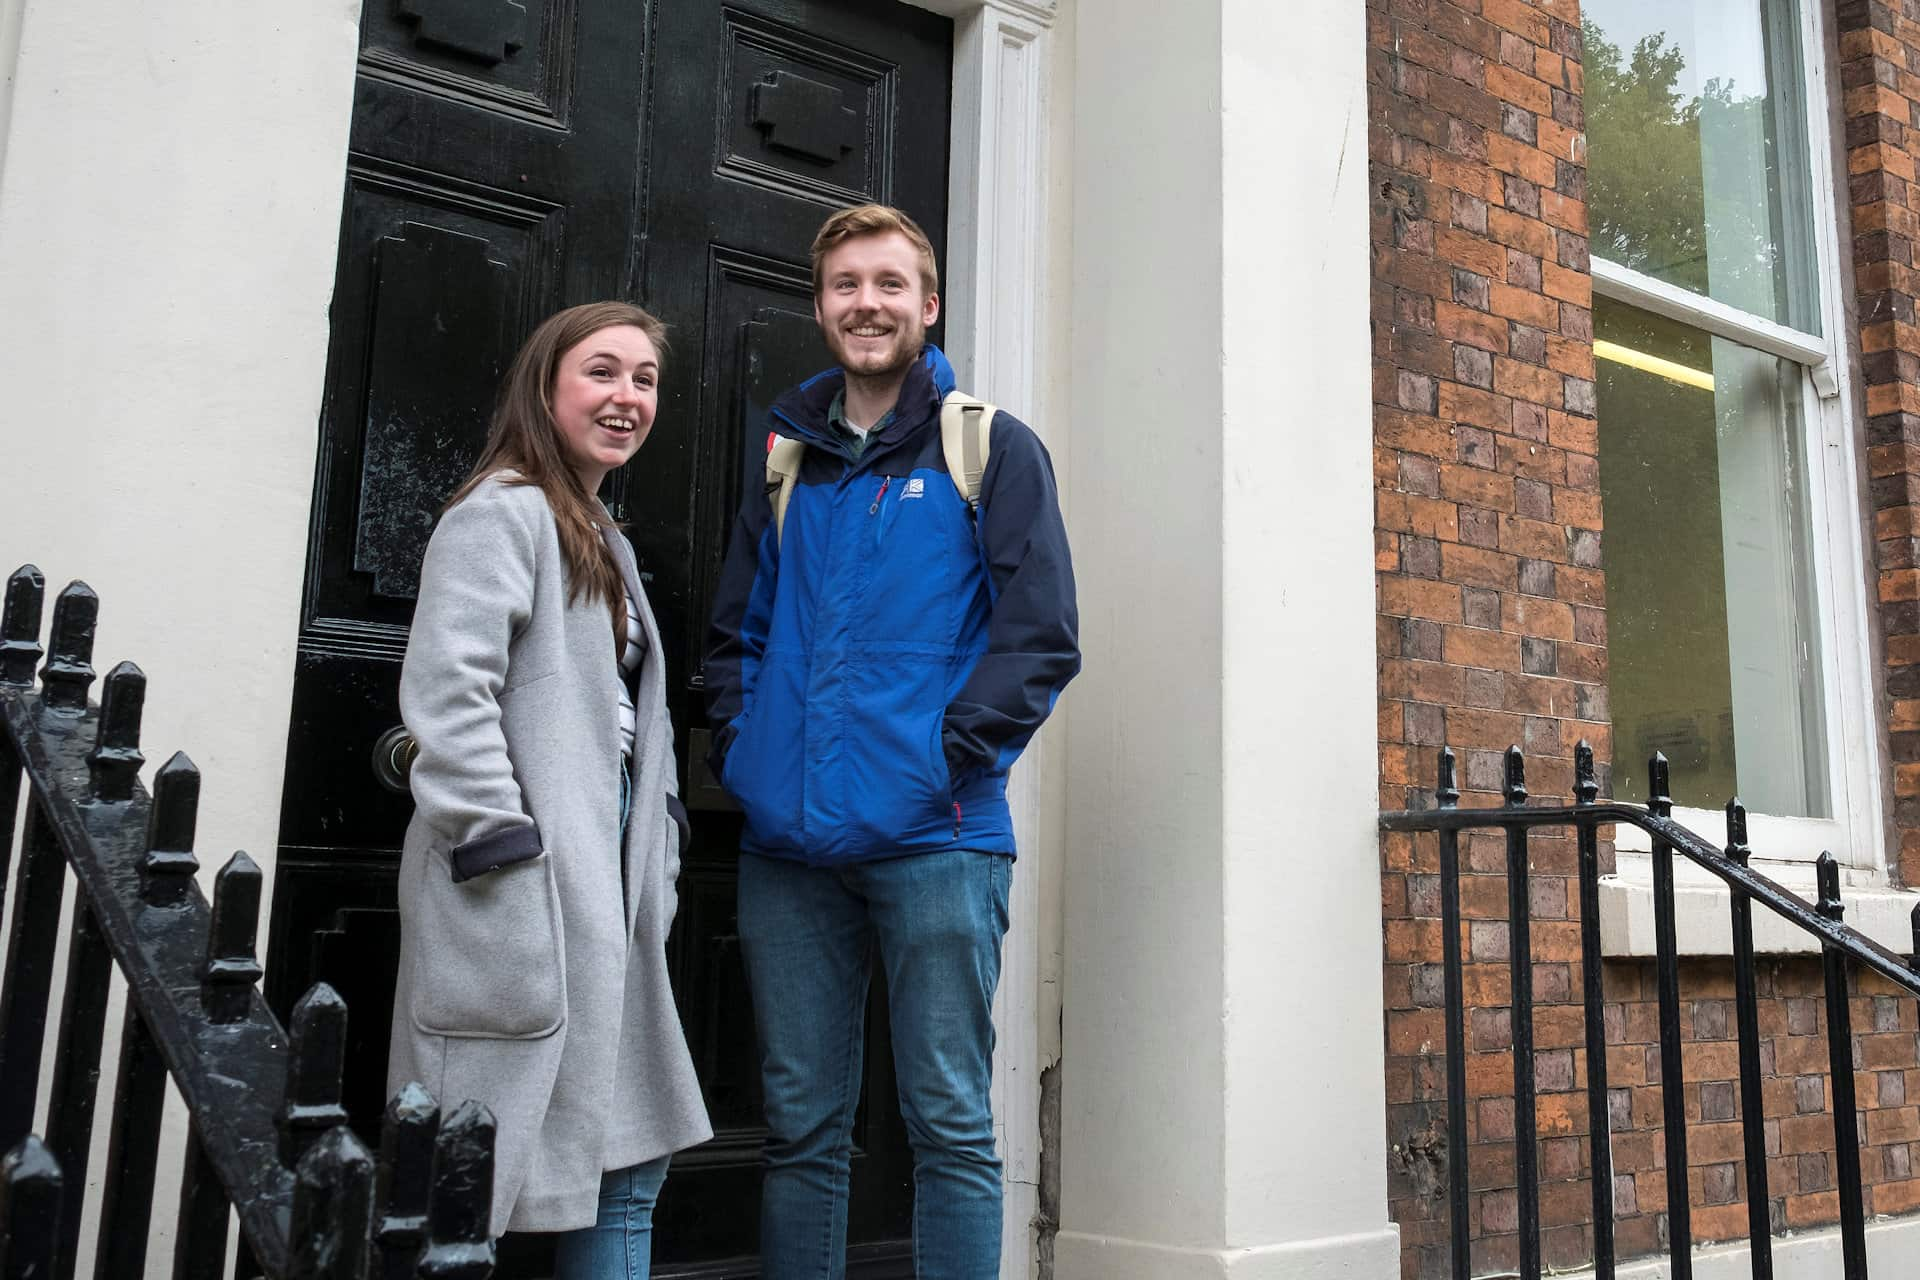 Students stood on abercromby square building doorway